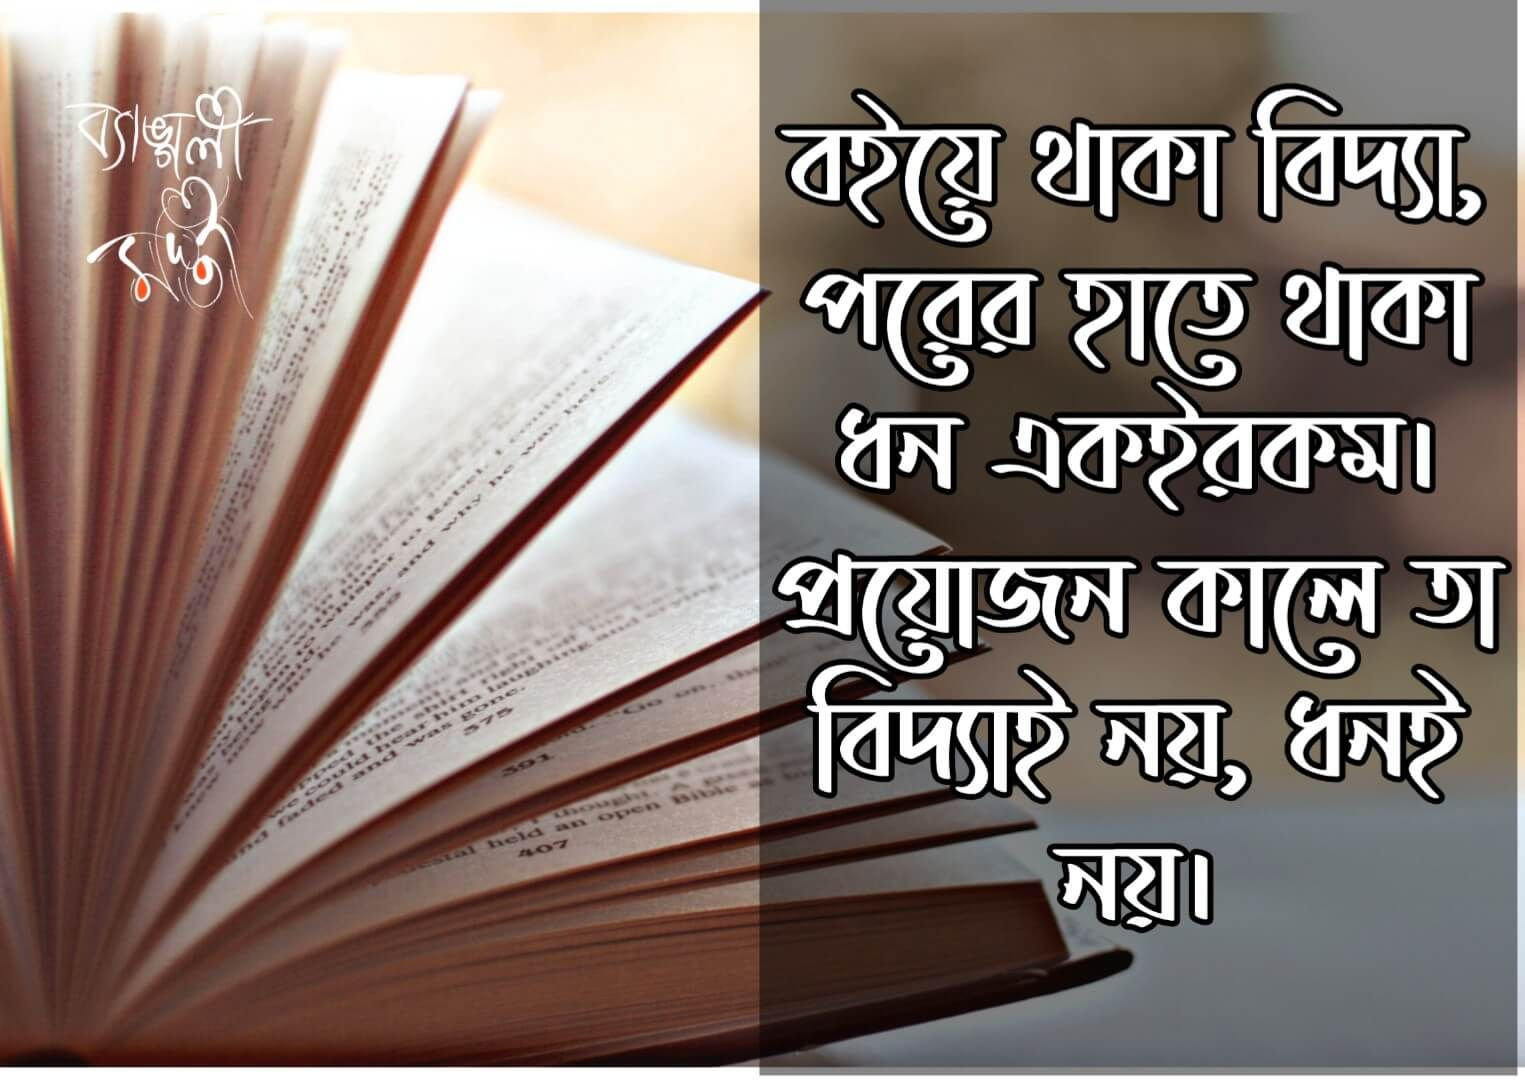 life-changing quotes in Bangla in 5  Life quotes, Life